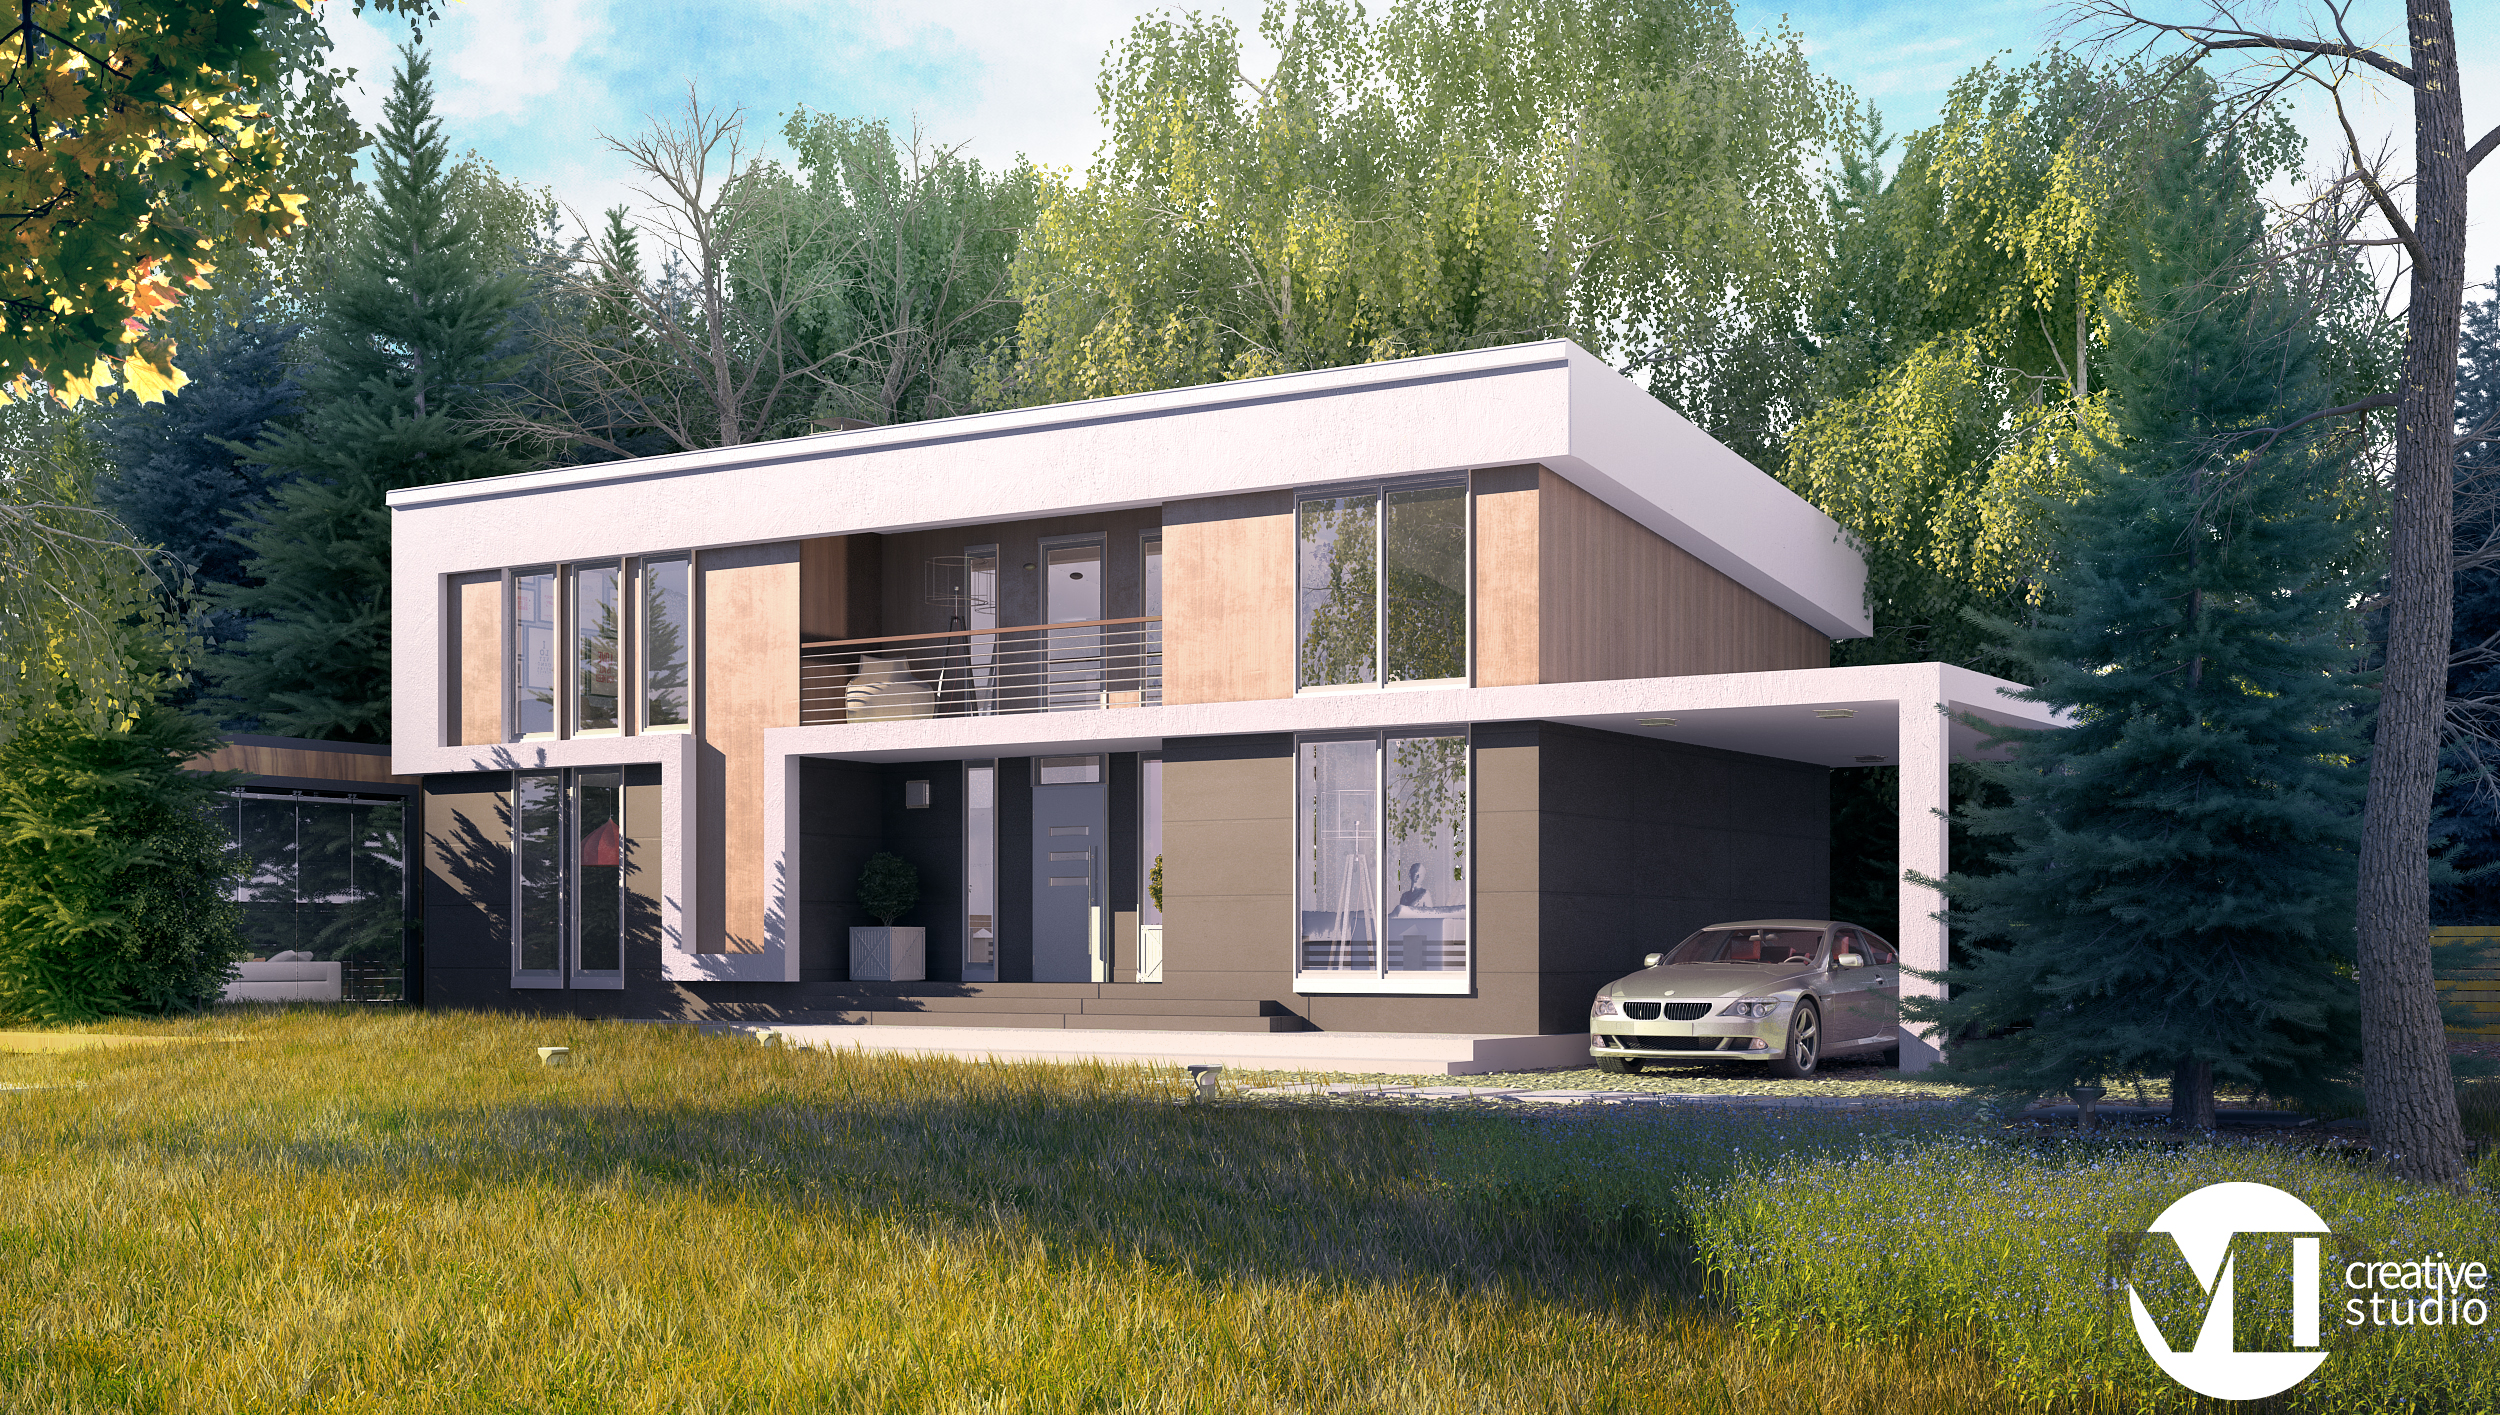 Two Story Modern House   MD Creative Studio | Architect Magazine | MD Creative  Studio, Single Family, Exteriors, Residential Projects